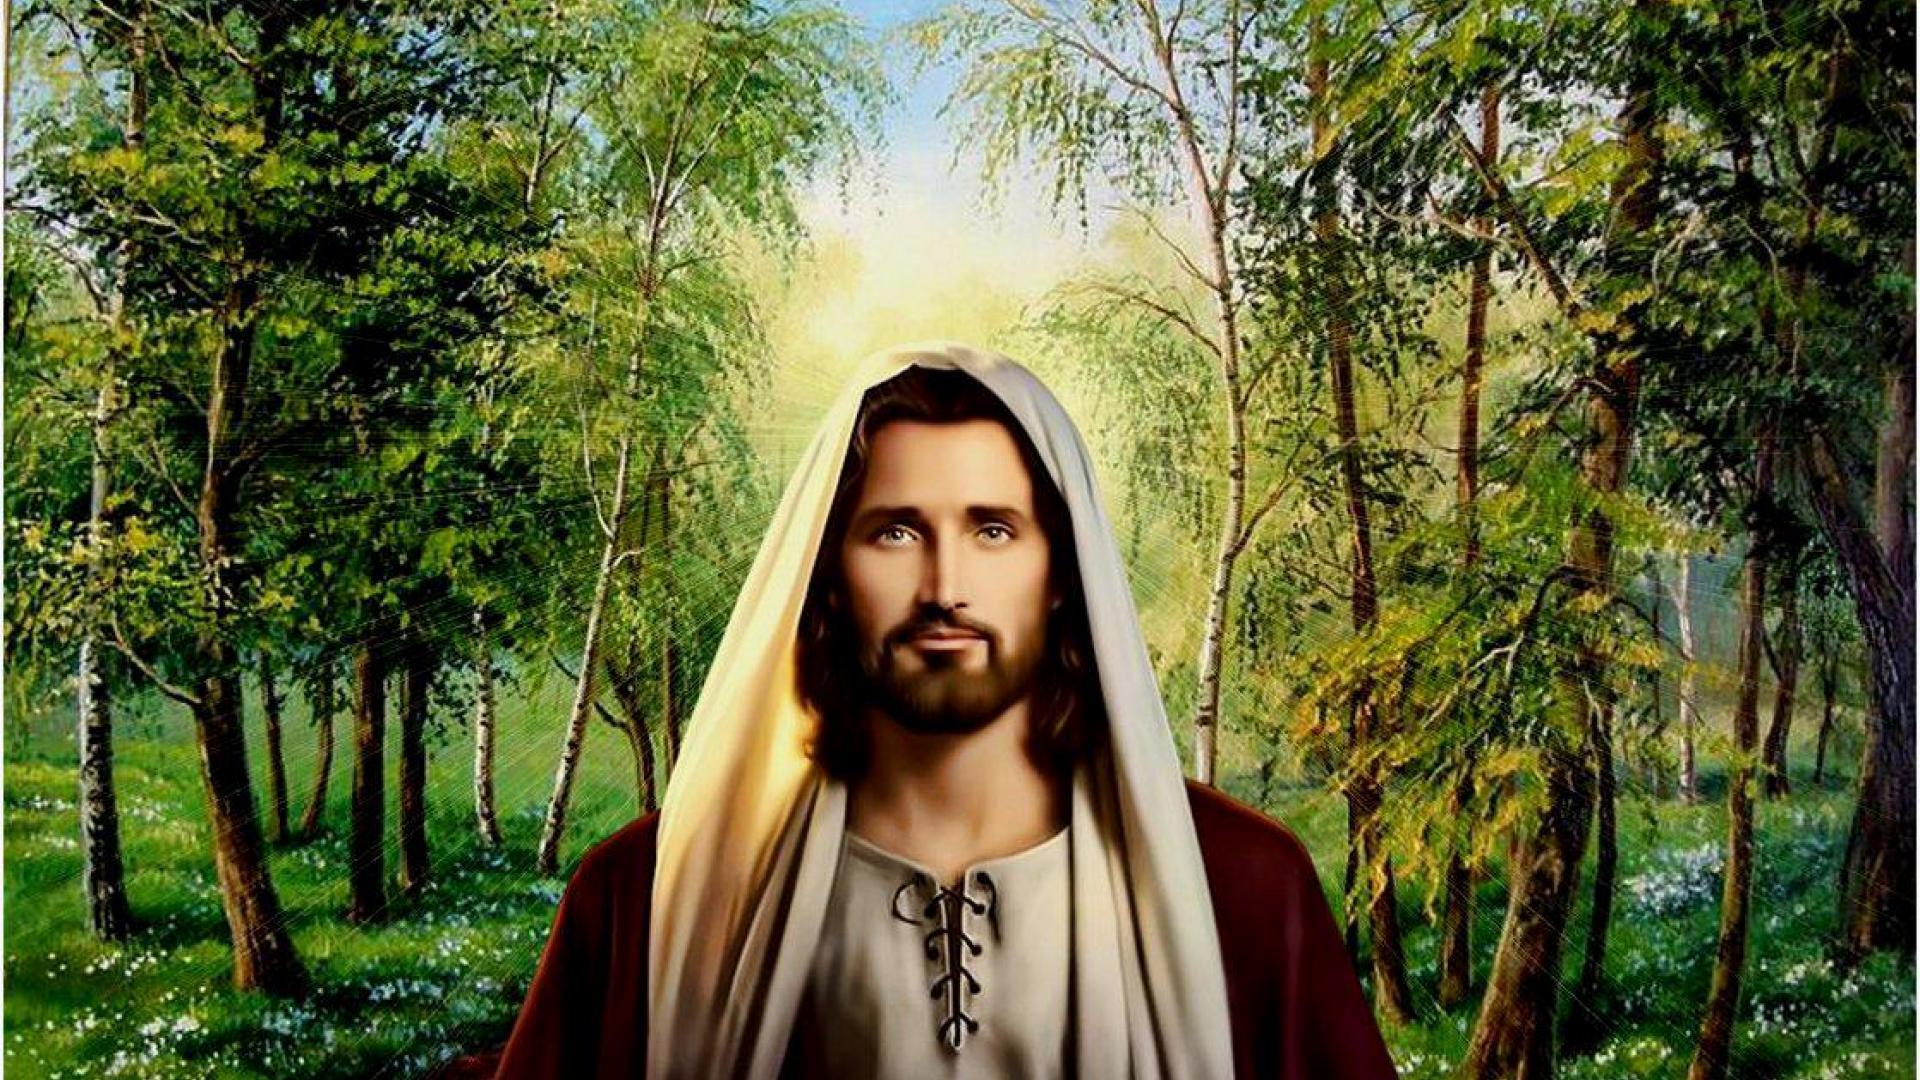 jesus christ wallpaper sized images pic set 13 - HD 1920×1080